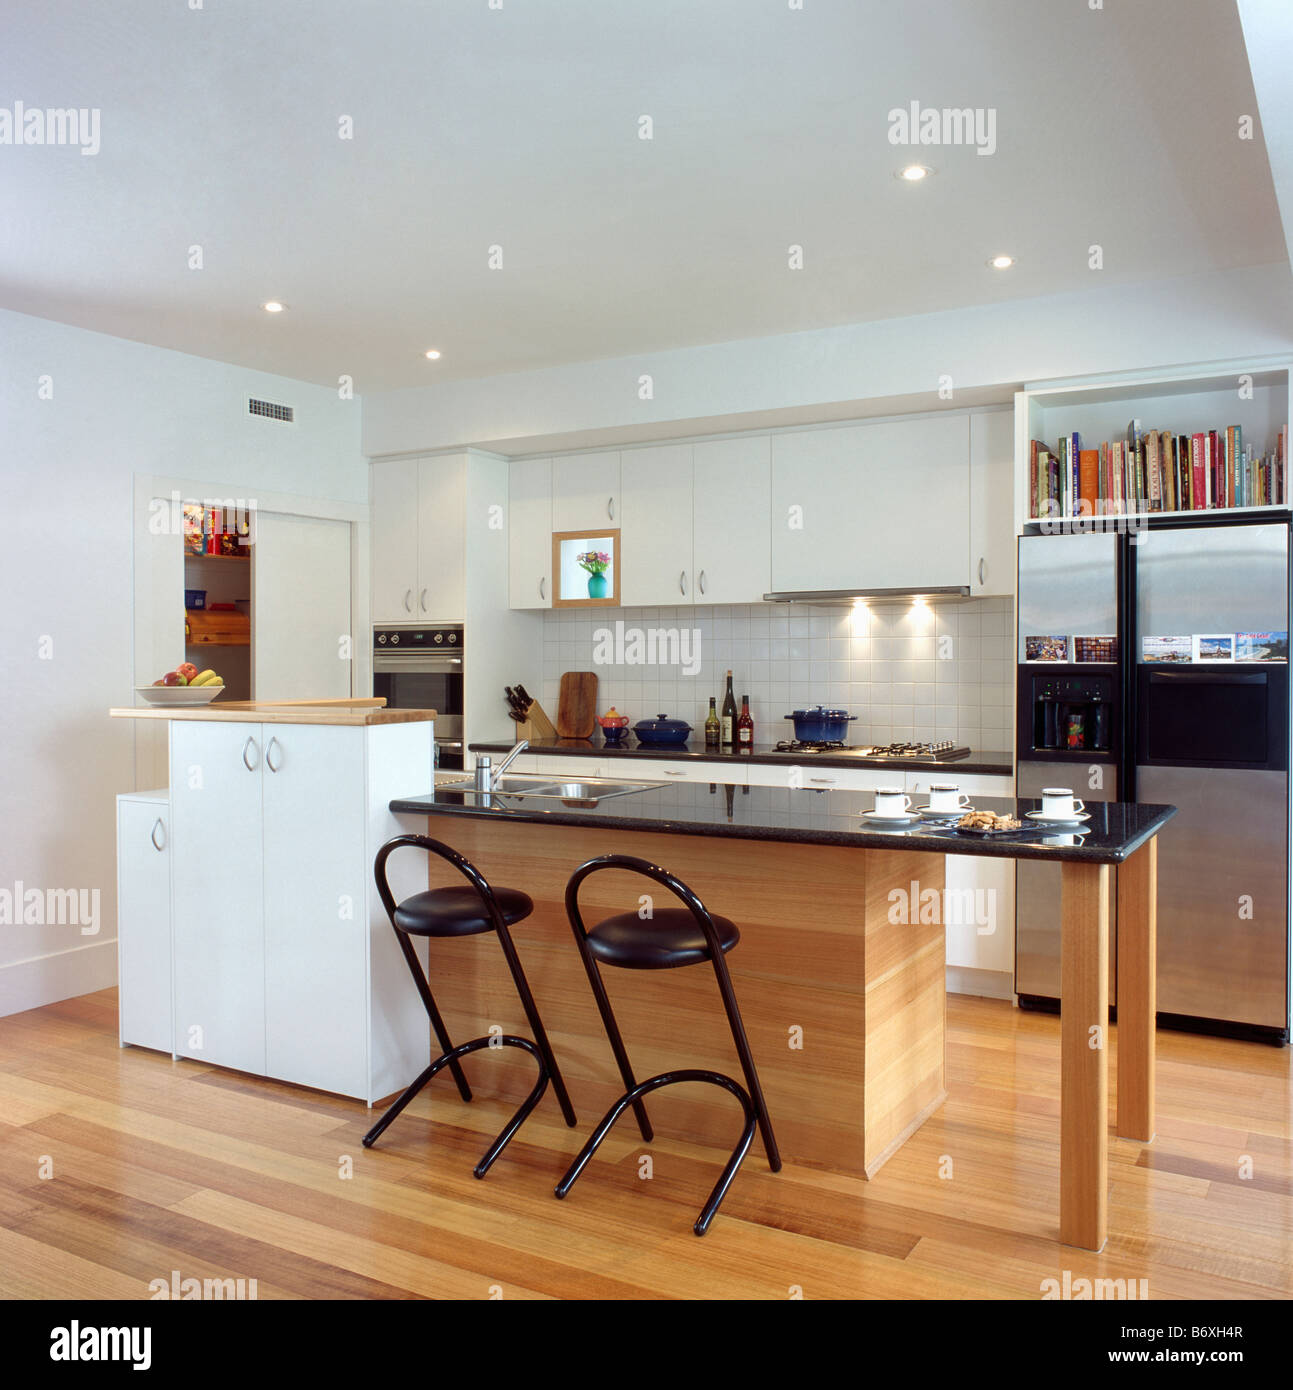 Superior Black Metal Stools At Breakfast Bar With Wooden Base And Black Granite  Worktop In Modern White Kitchen With Wooden Flooring Pictures